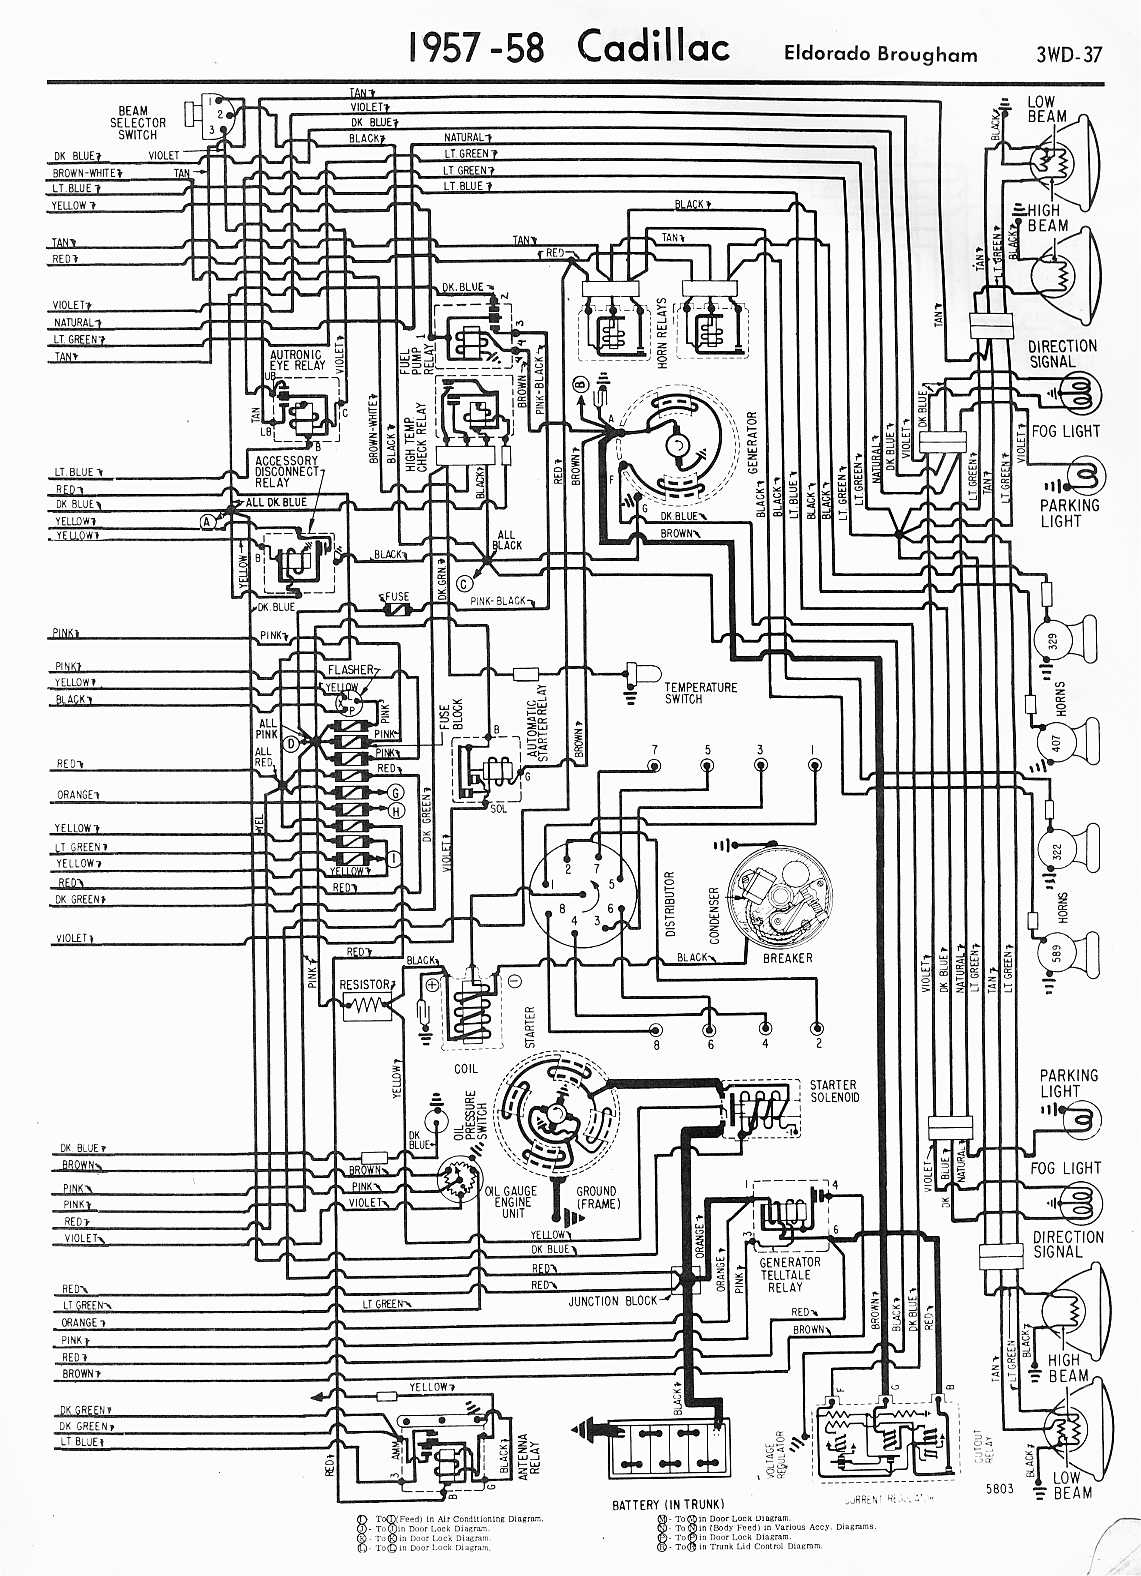 99 Cadillac Deville Wiring Diagram Wiring Diagram - GUS.MOOSHAK.INDiagram Database - MOOSHAK.IN